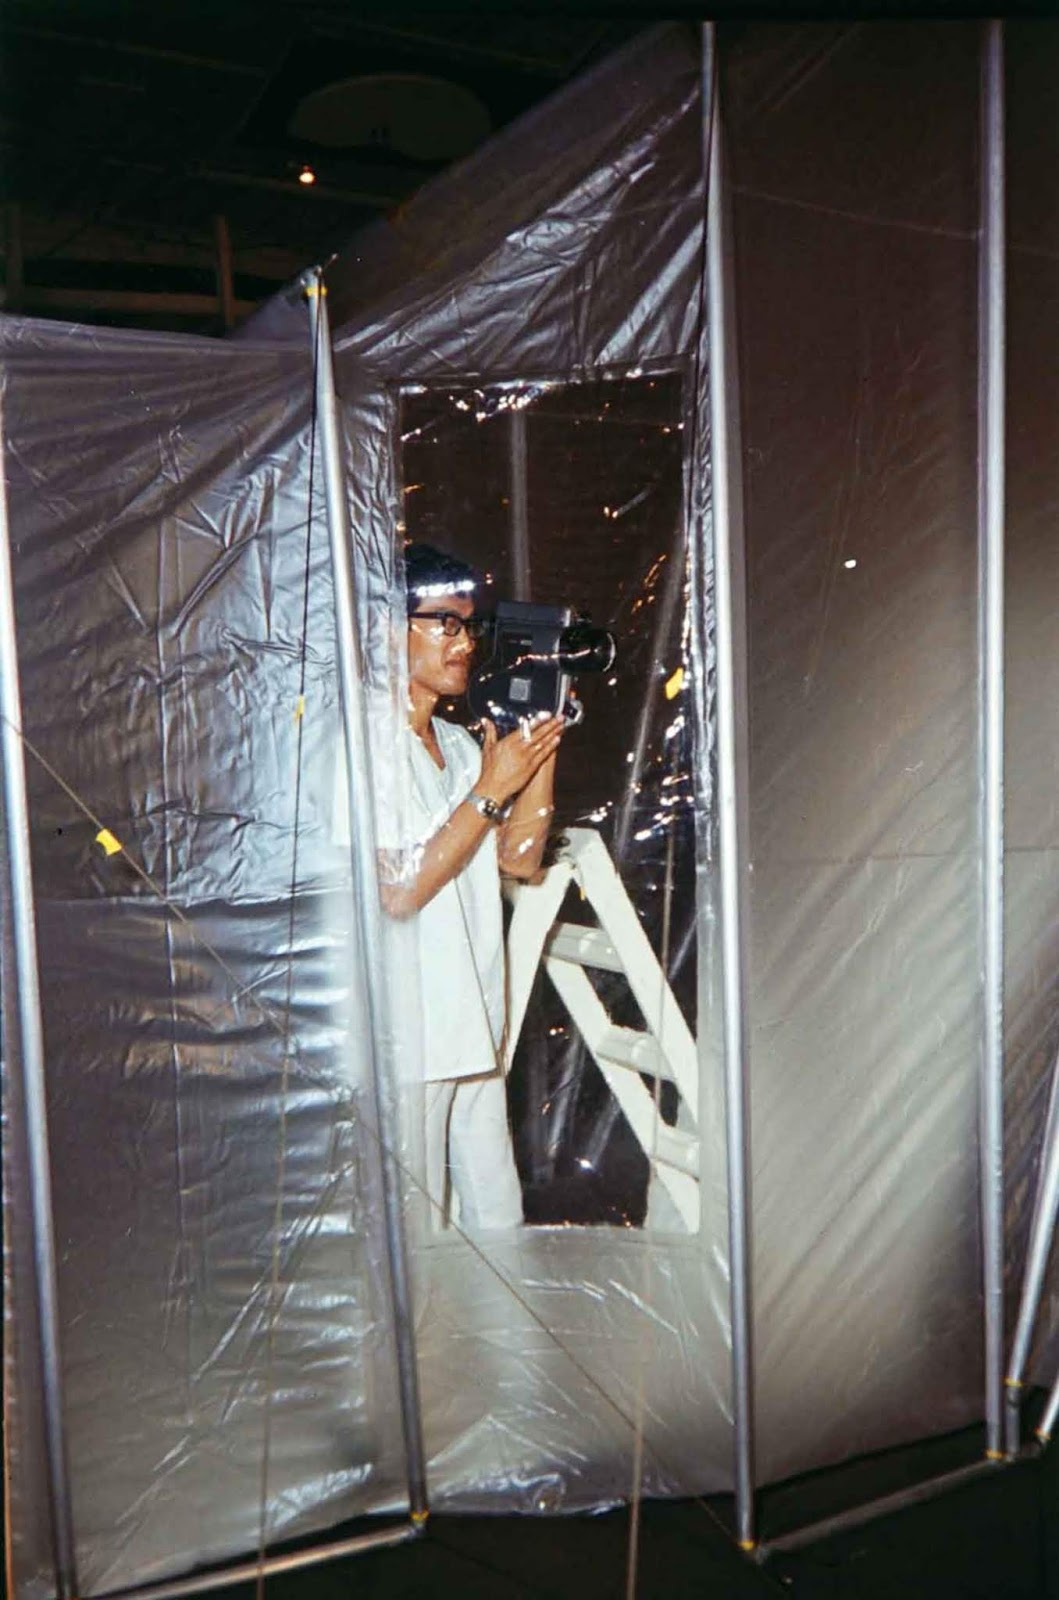 Man taking video with video recorder camera at mobile quarantine facility for Apollo 11 Moon Flight, 1969.